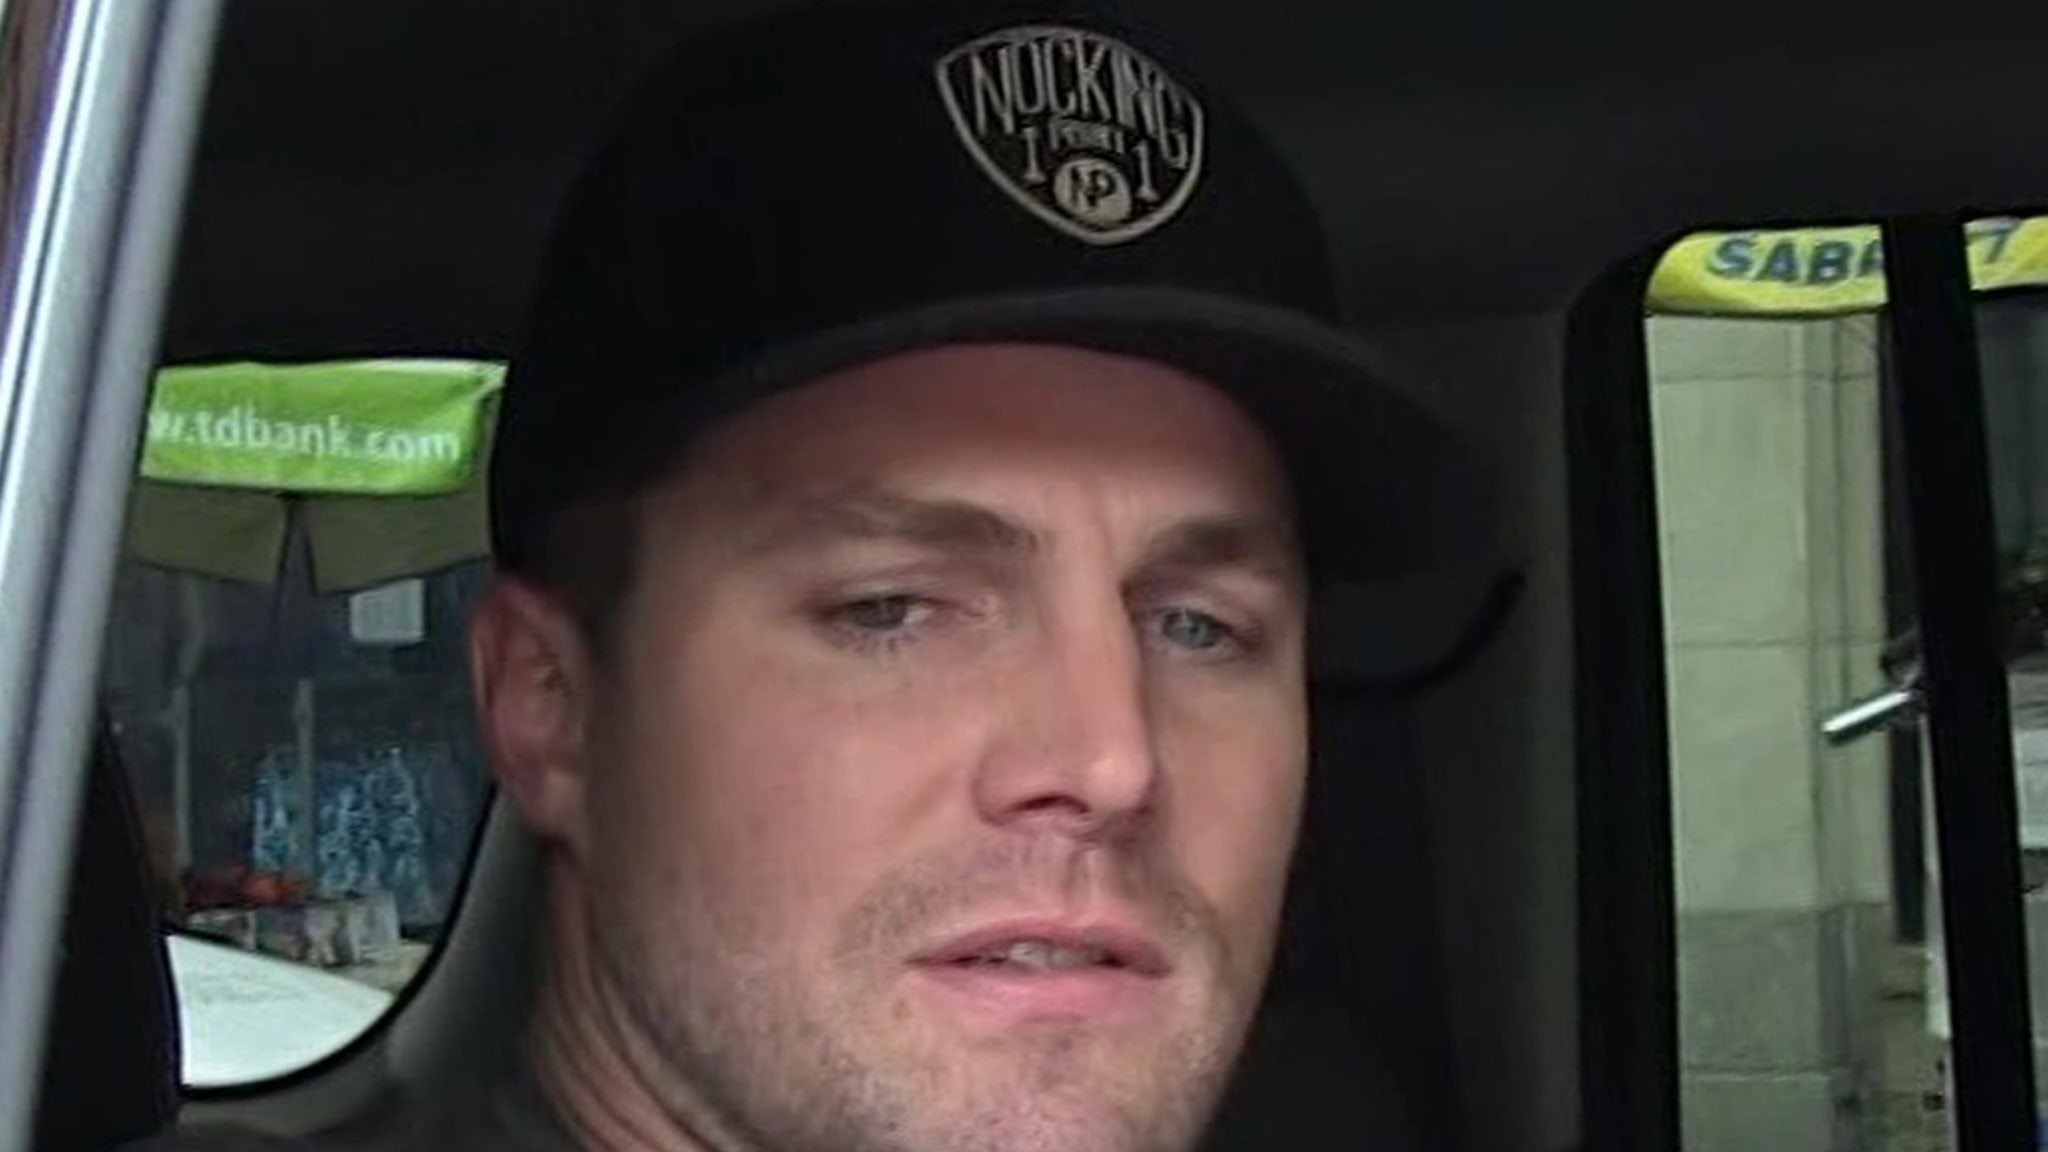 Stephen Amell Removed from Flight After Allegedly Berating Wife – TMZ